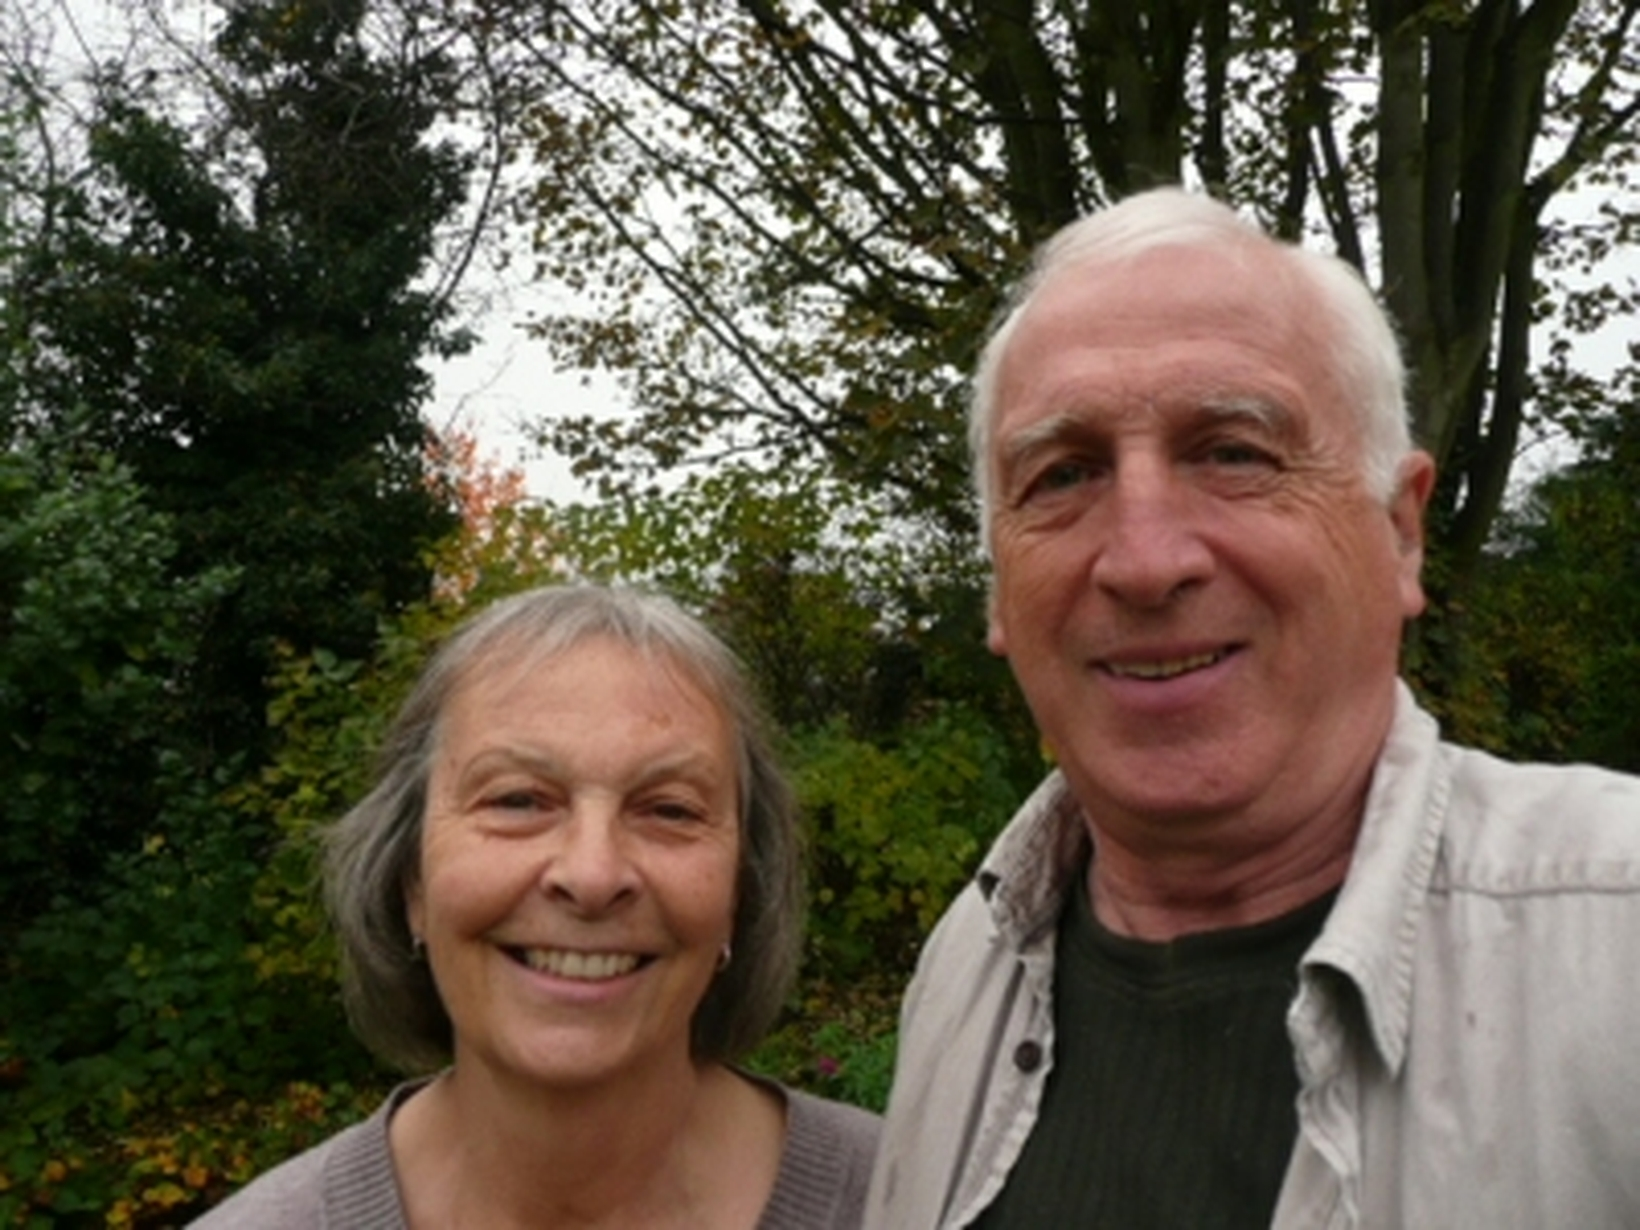 Philip & Valerie from Chester, United Kingdom